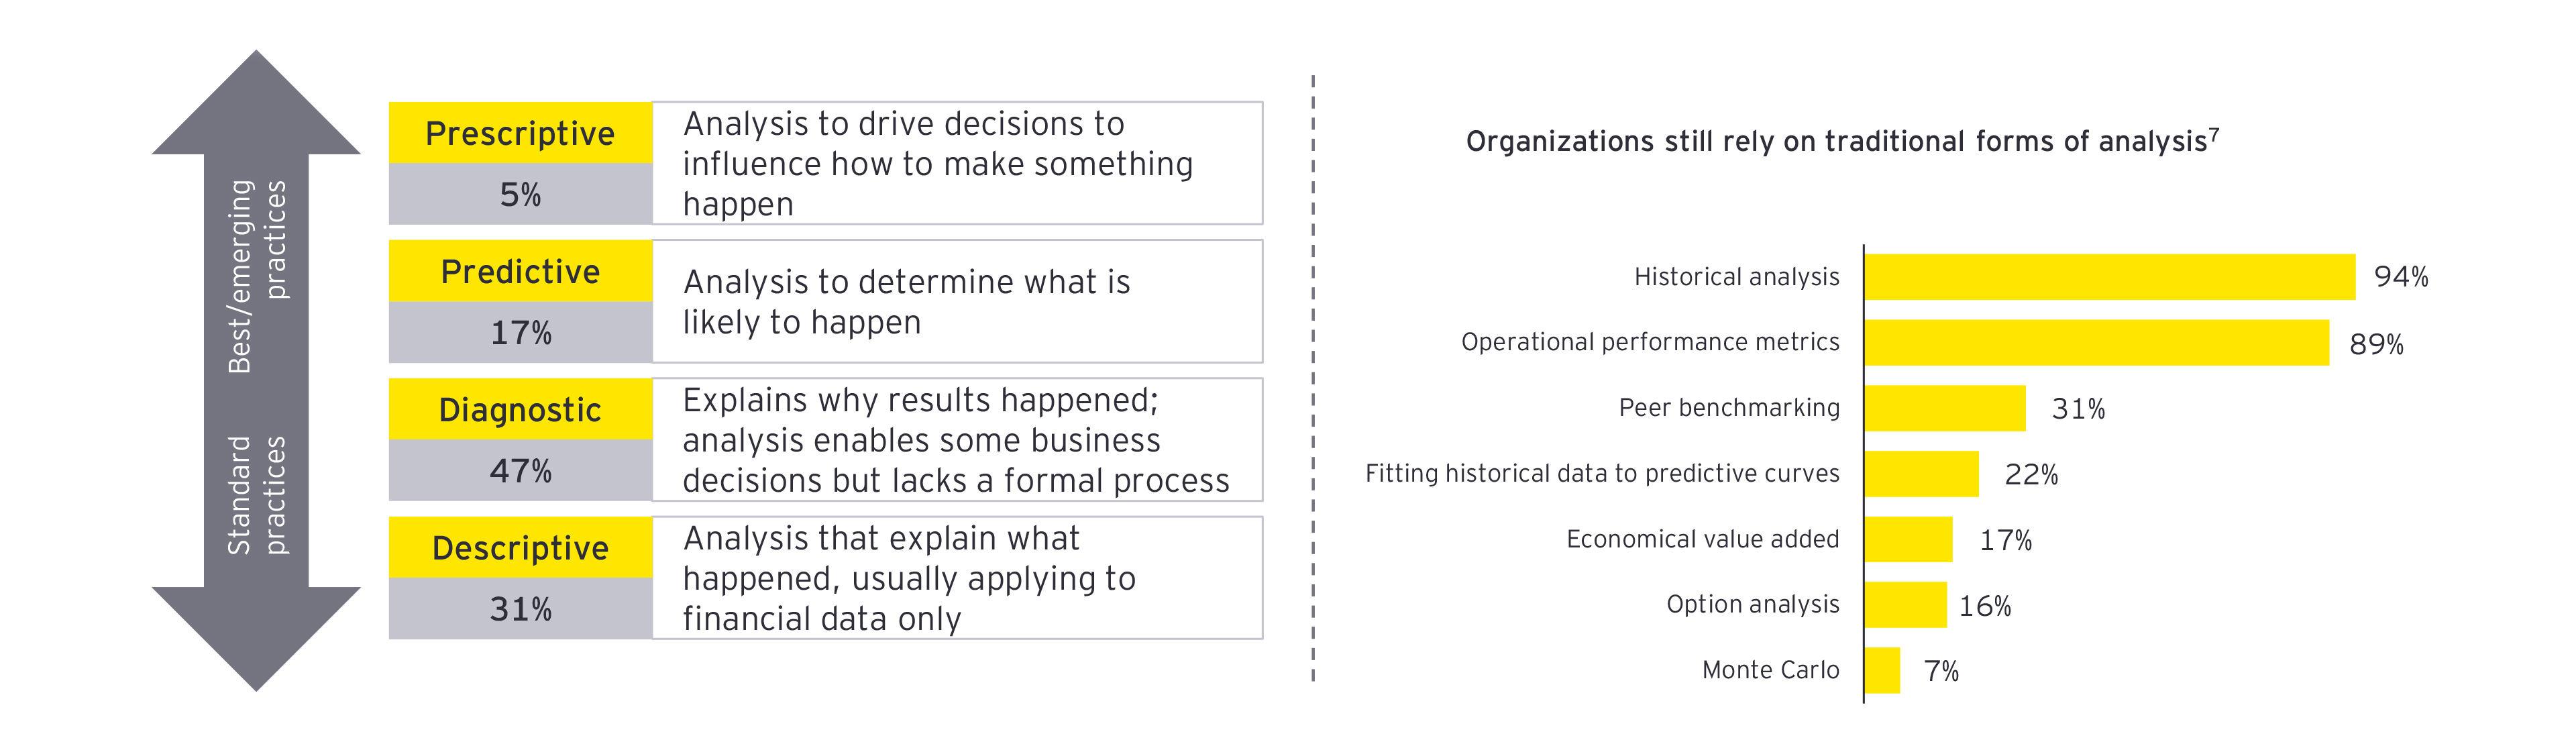 EY - Organizations-still-rely-on-traditional-forms-of-analysis